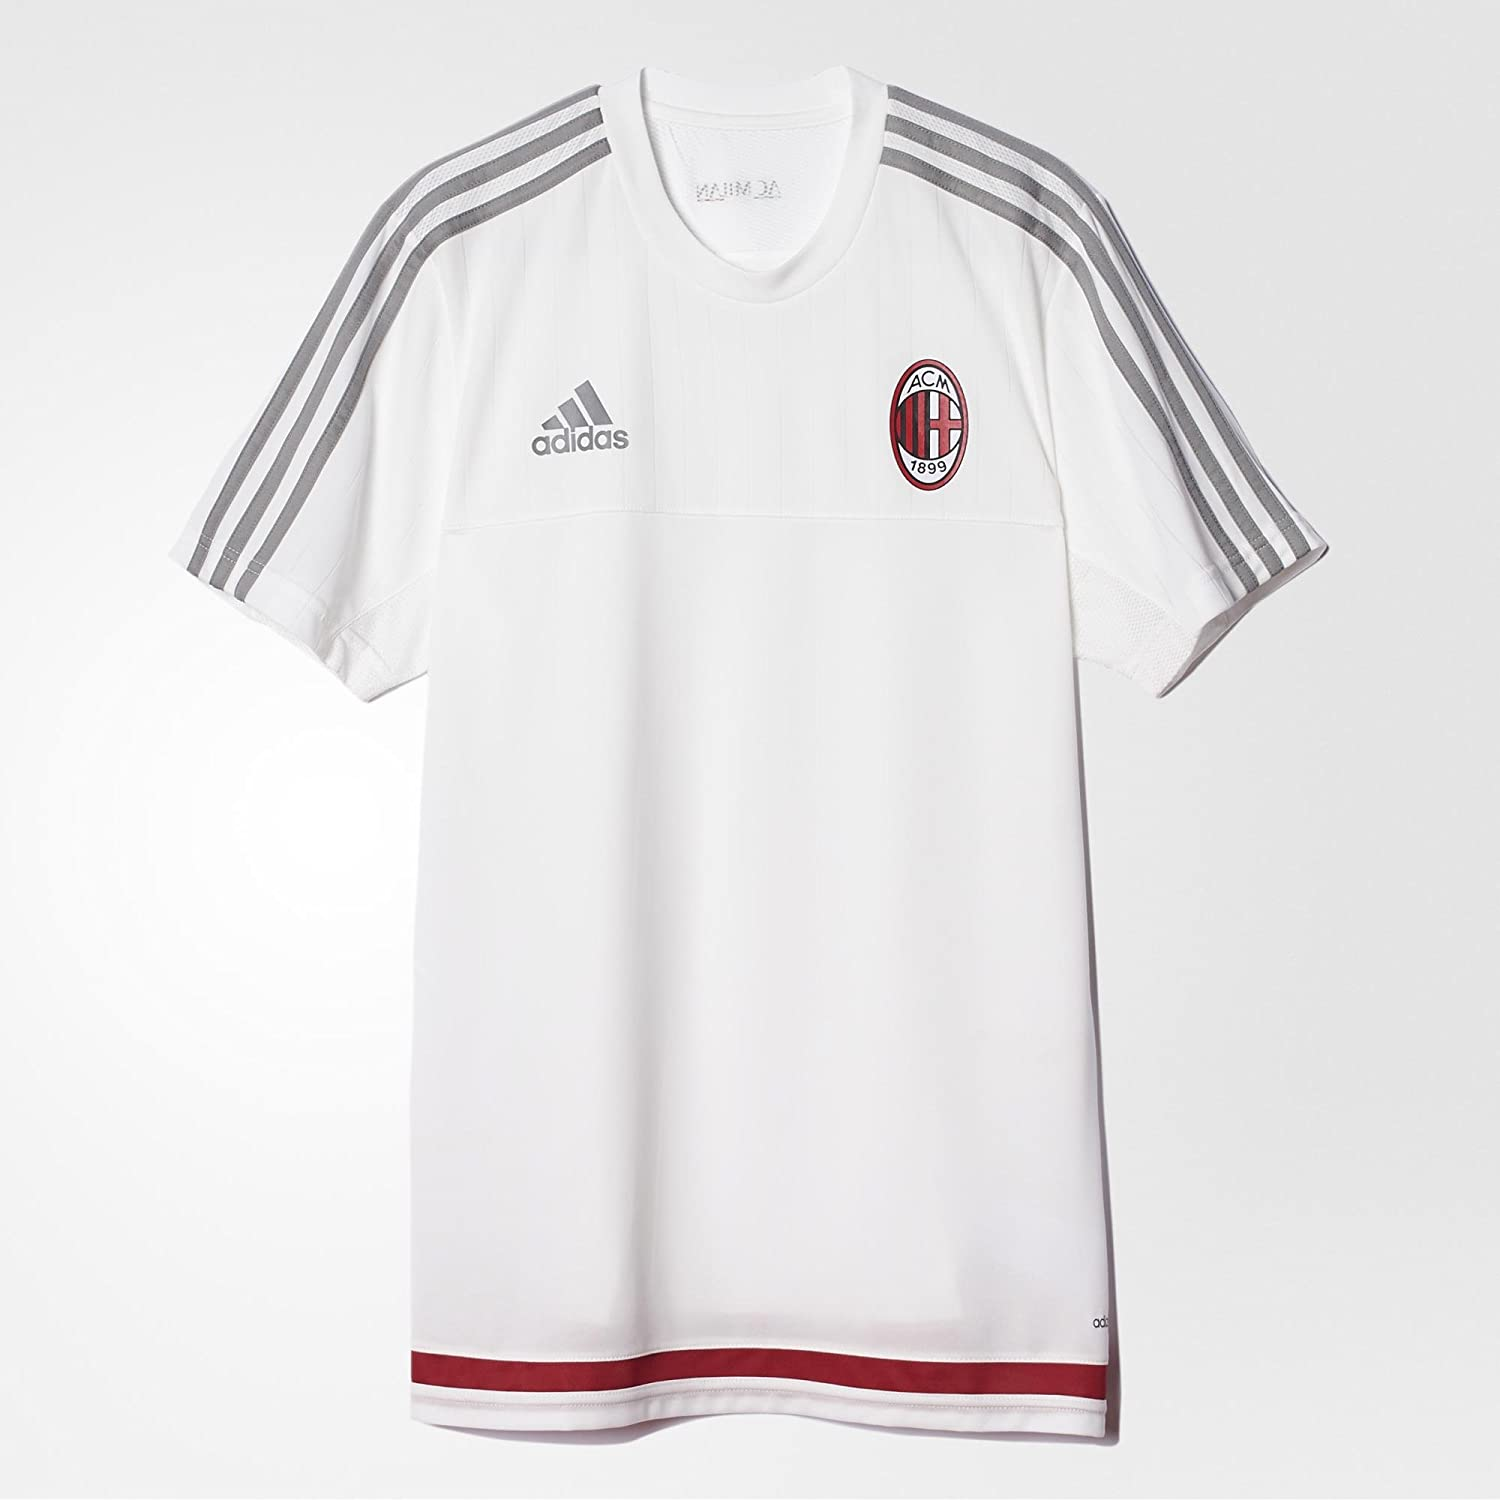 adidas Men's ACM Training Jersey S20378